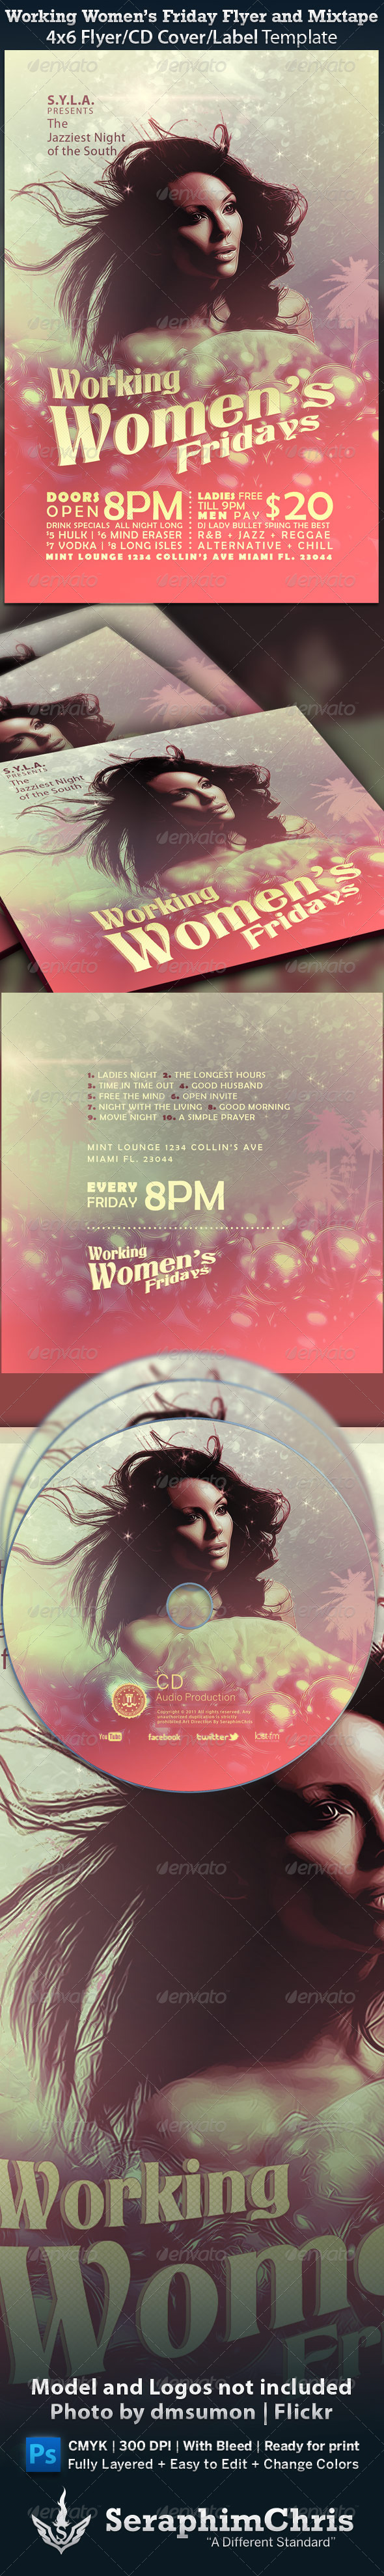 GraphicRiver Working Women s Fridays Flyer and Mixtape 1216569